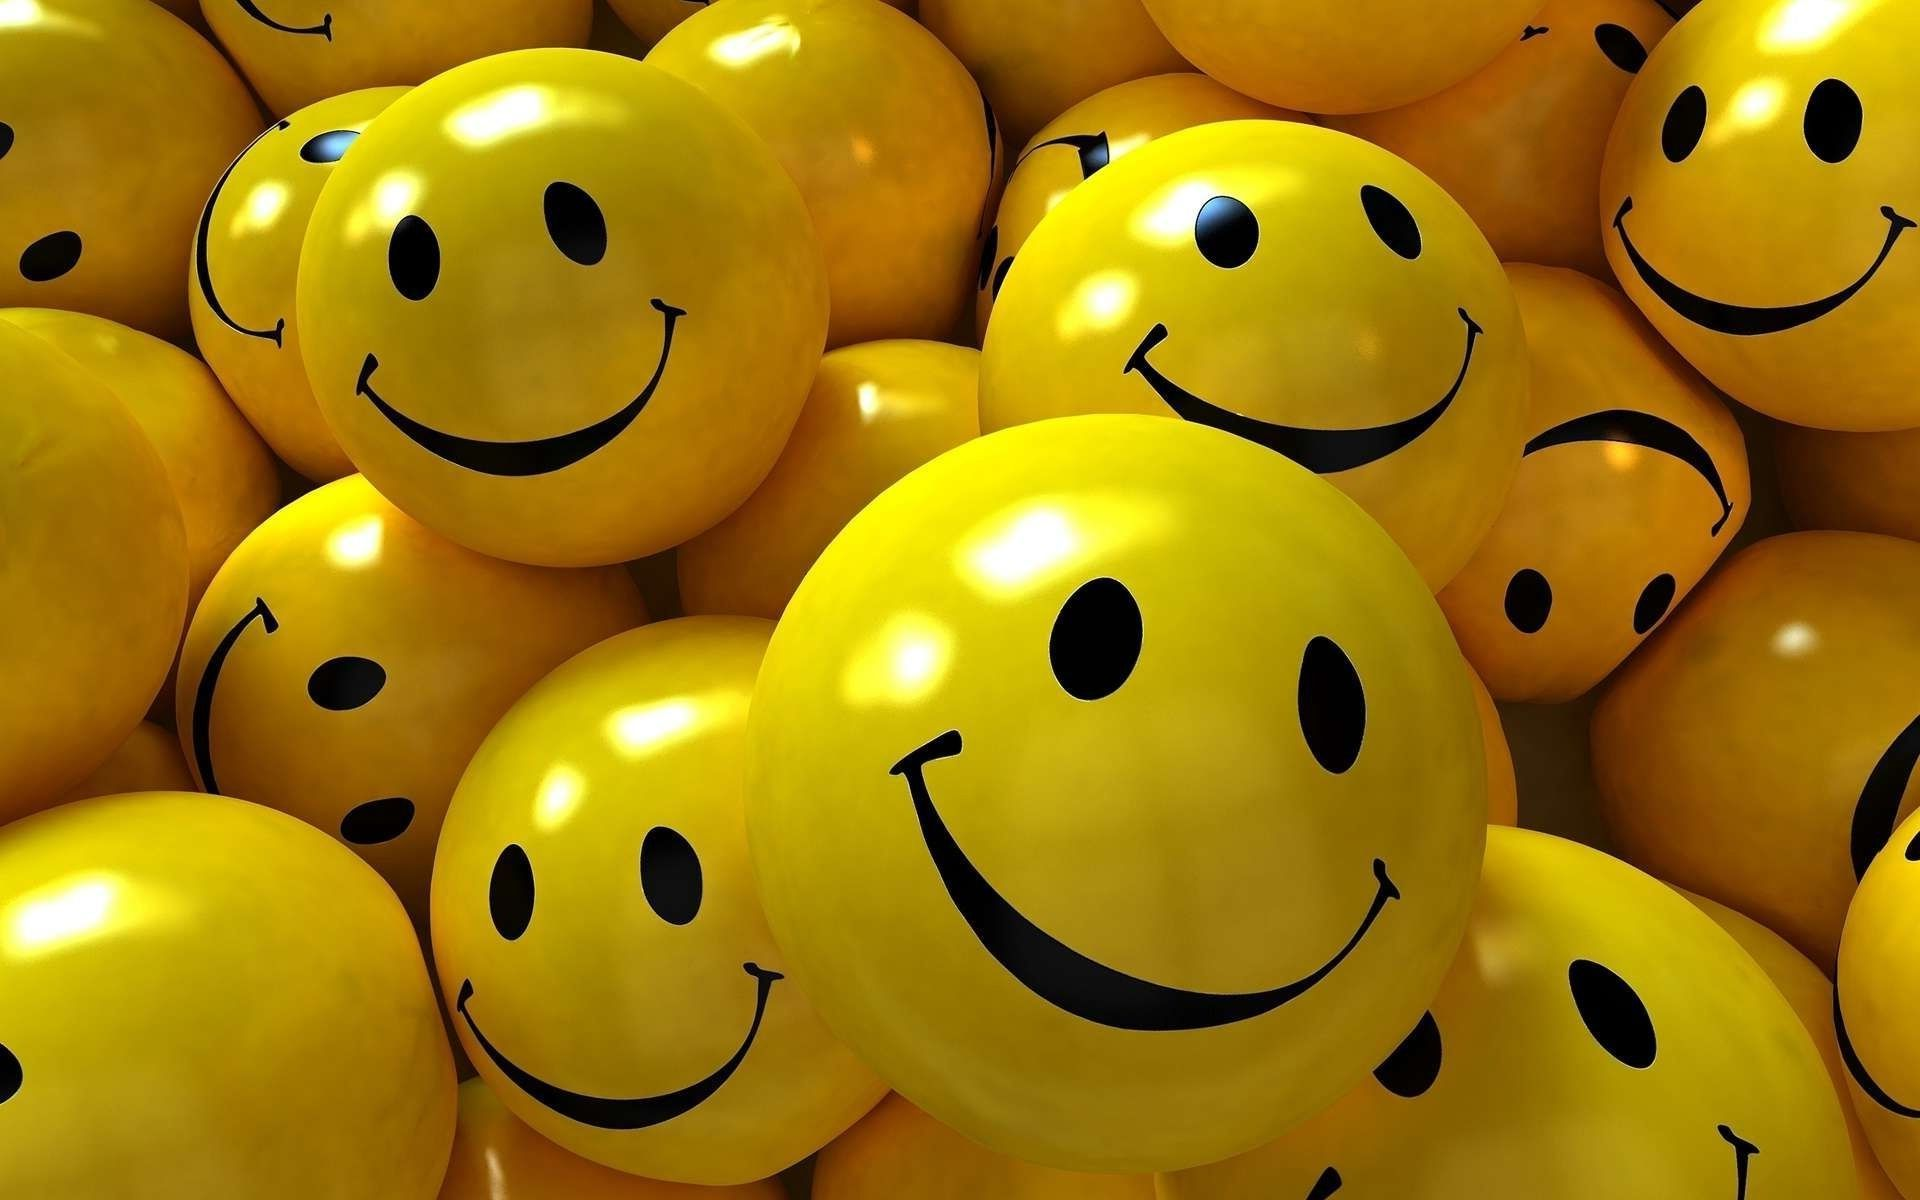 Wallpaper download free image search hd - Download Free Smiley Love Wallpapers For Your Mobile Phone Top Wallpapers Pinterest Smiley And Wallpaper